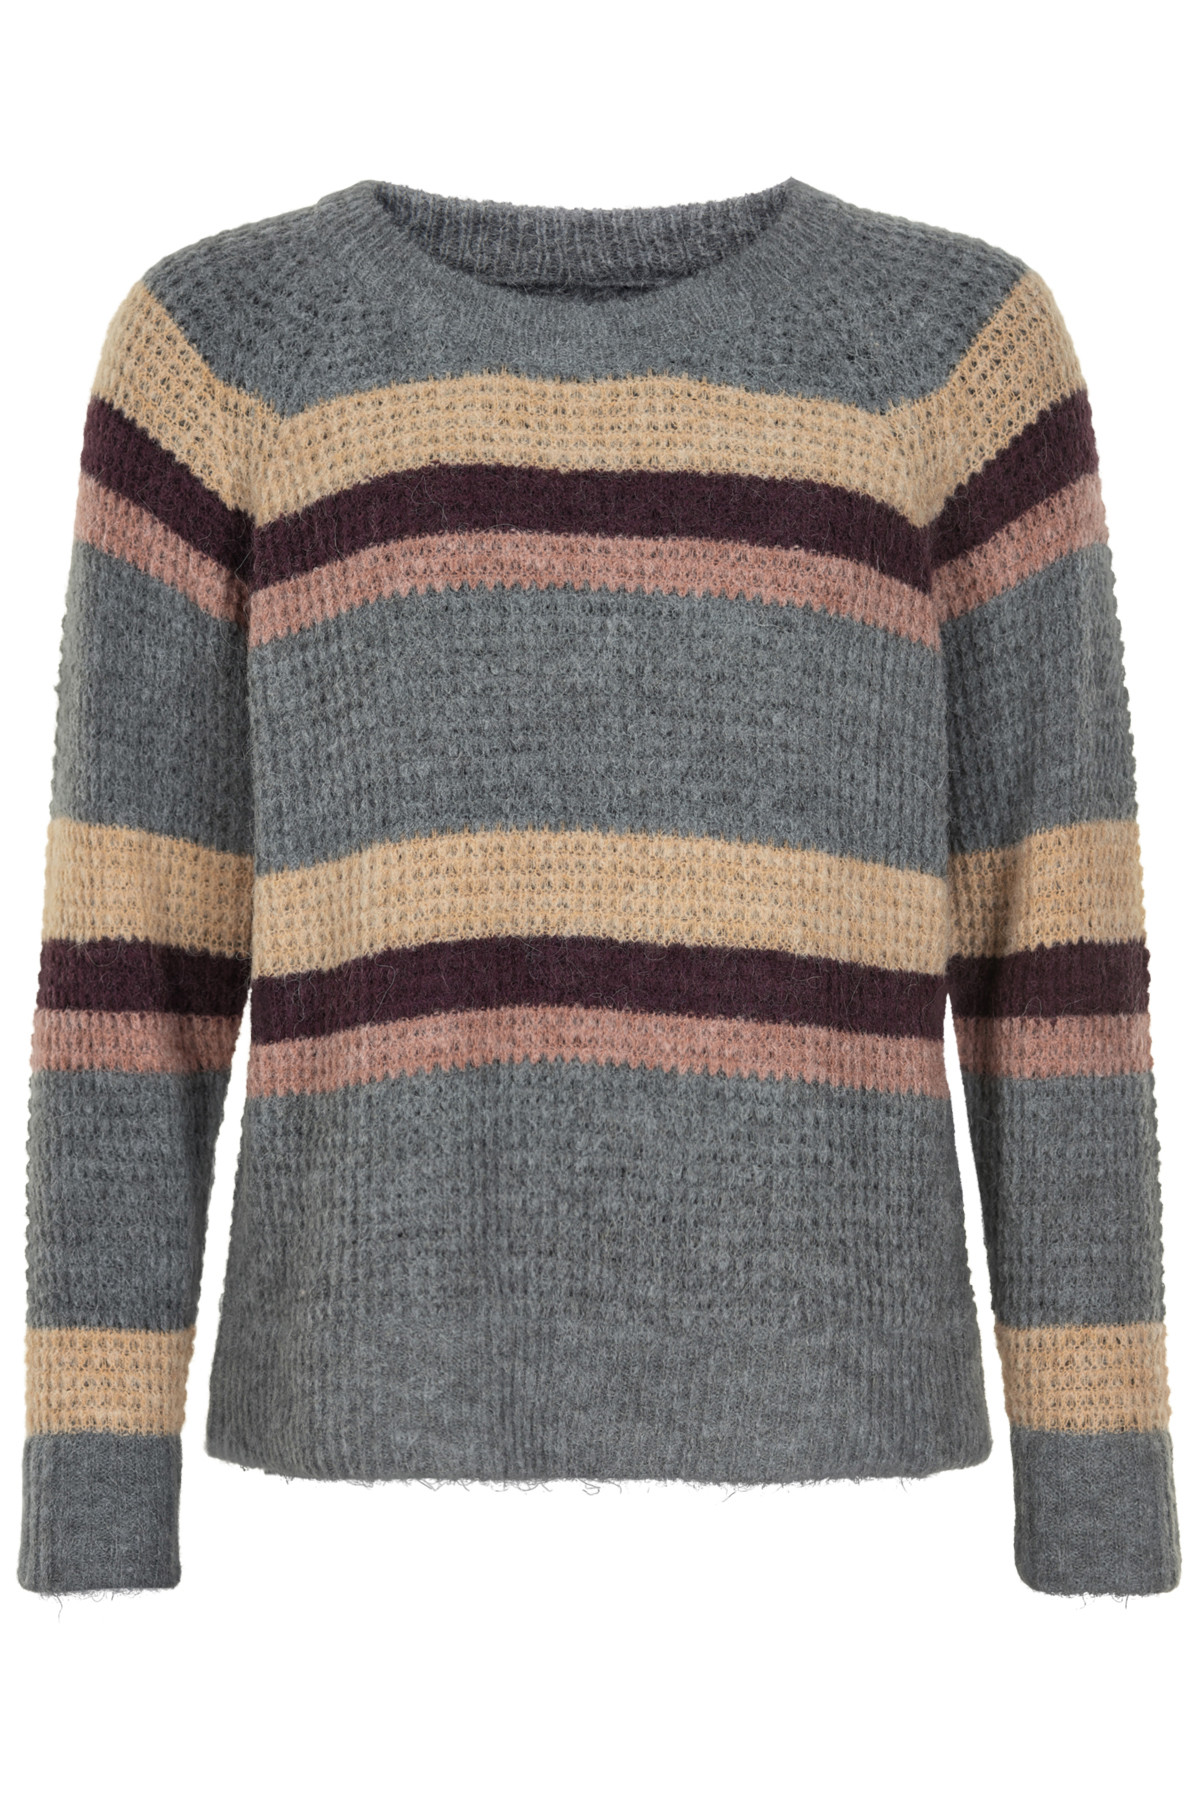 Image of   AND LESS BAMBINA PULLOVER 5419202 S (Sedona, S)